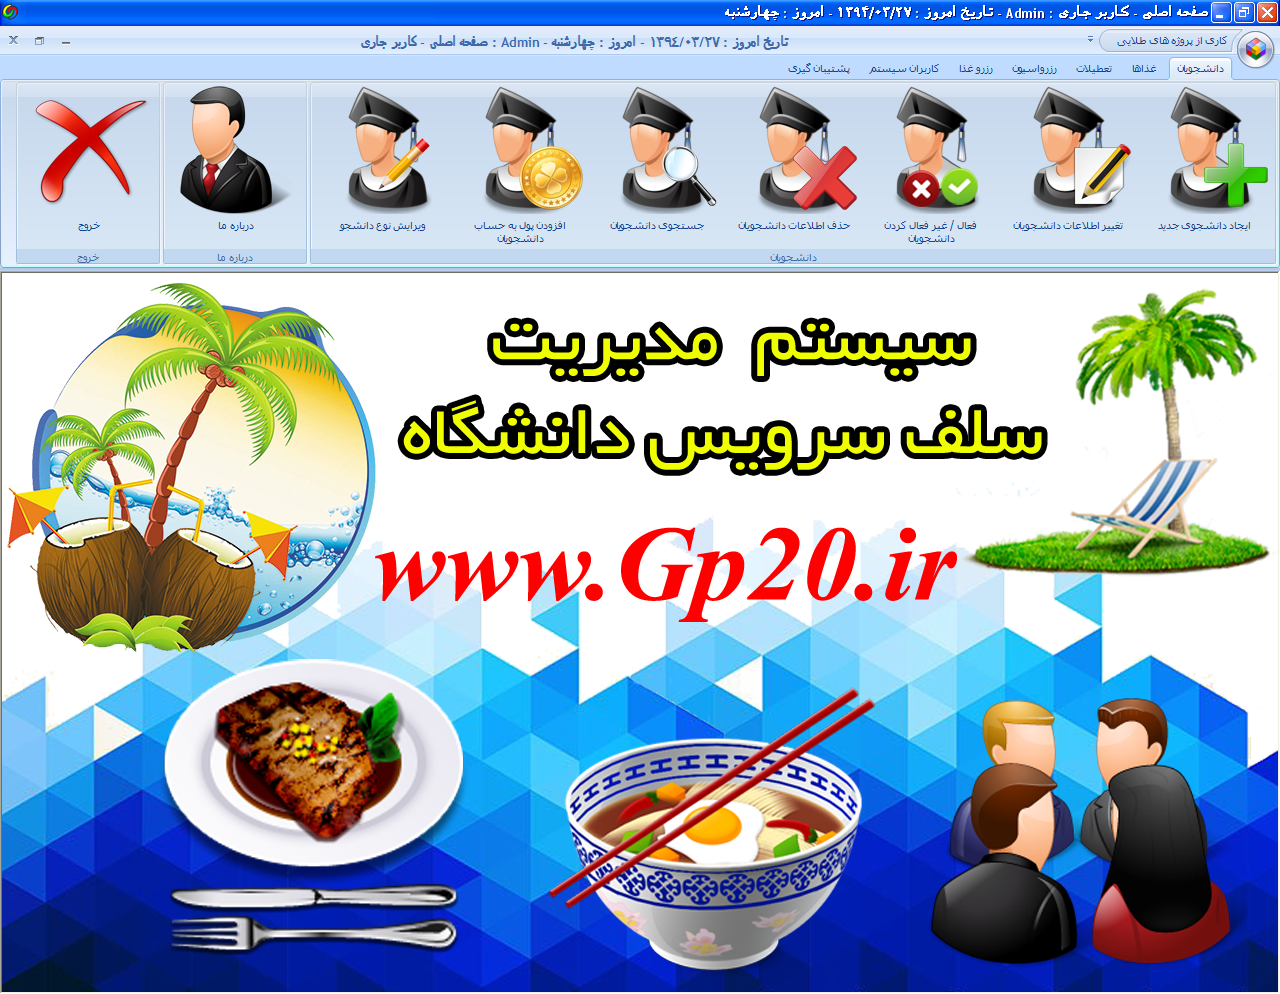 http://dl.gp20.ir/PostPicture/special-pic/self-servies-full.png